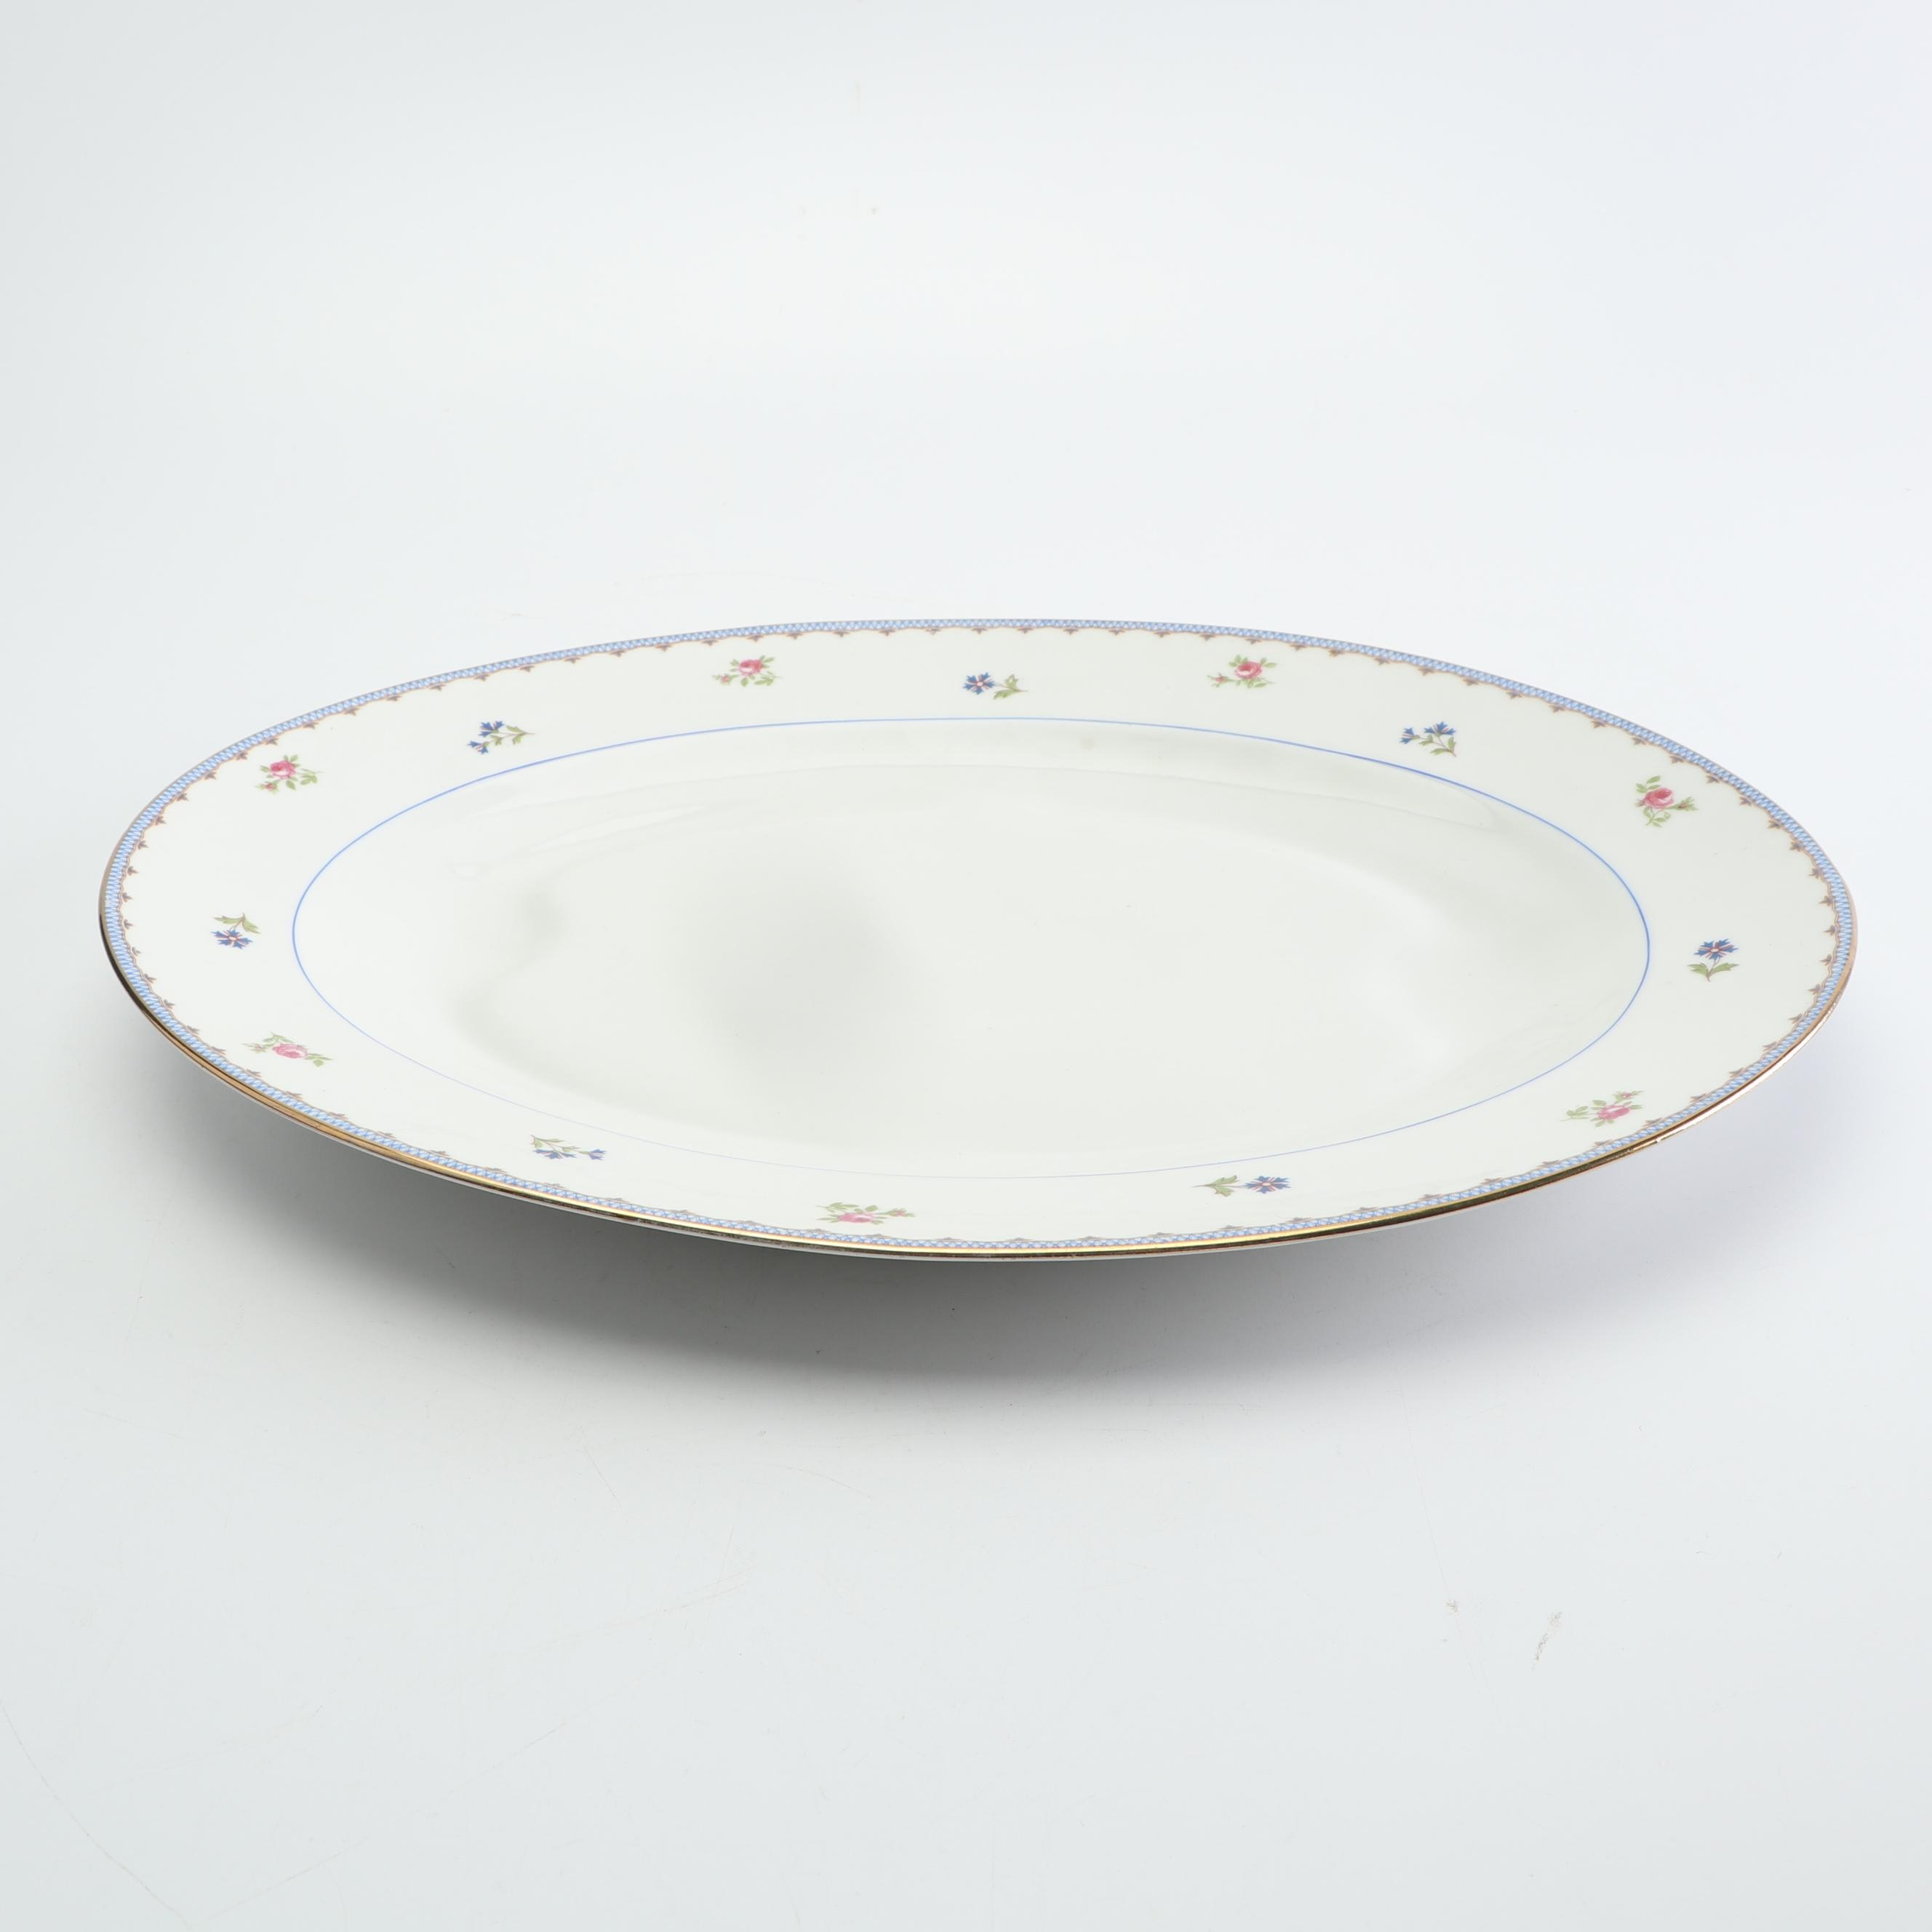 Early 20th Century Ahrenfeldt Limoges Porcelain Platter